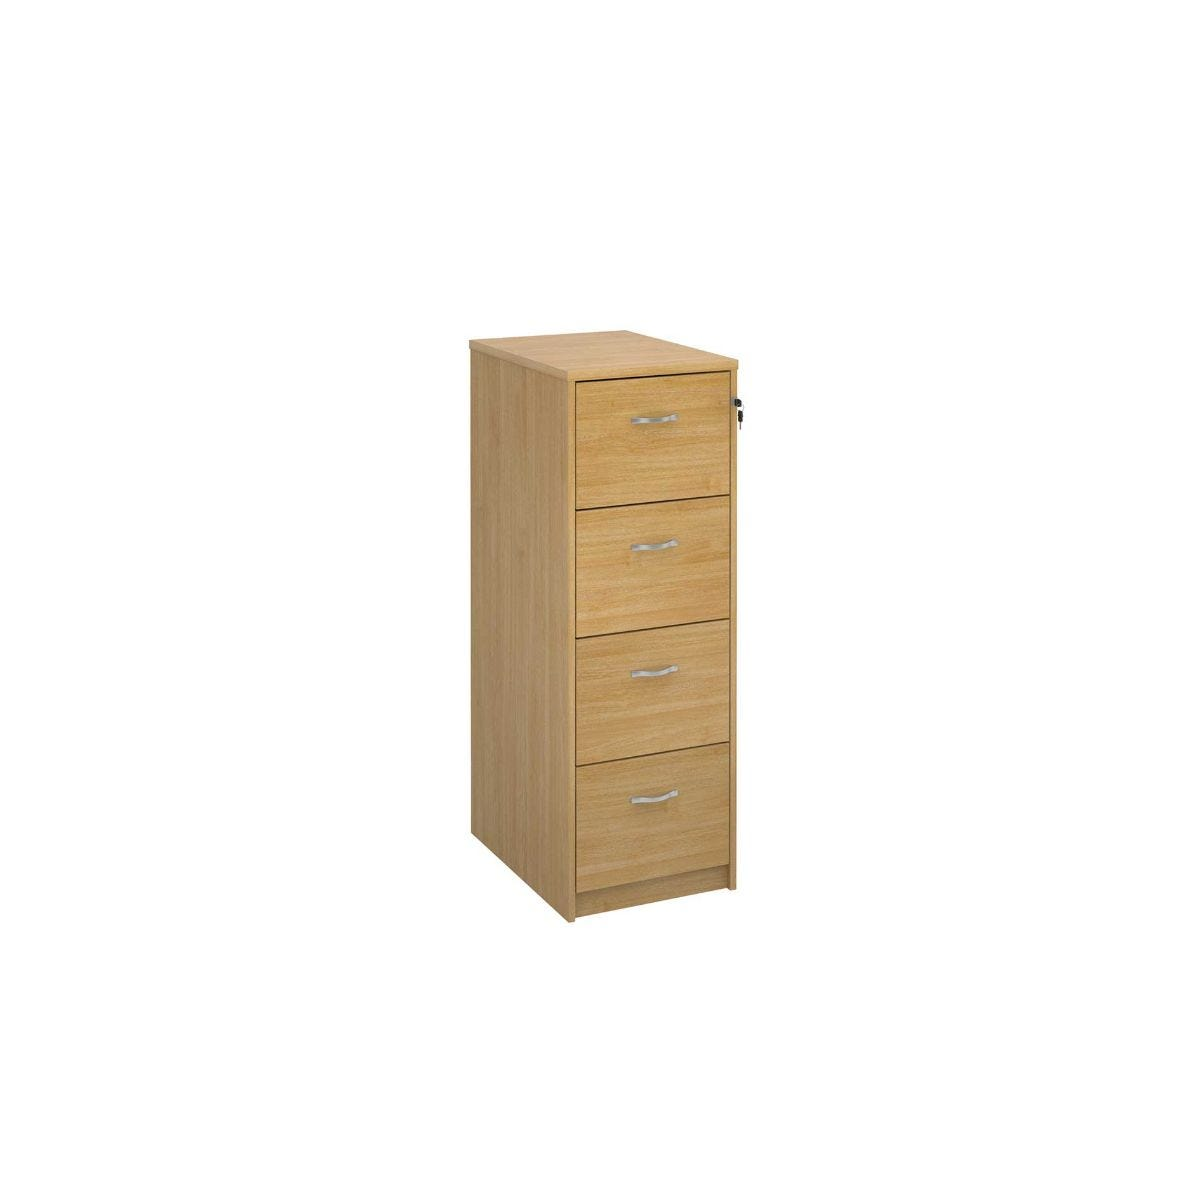 Deluxe Executive Four Drawer Filing Cabinet, Oak